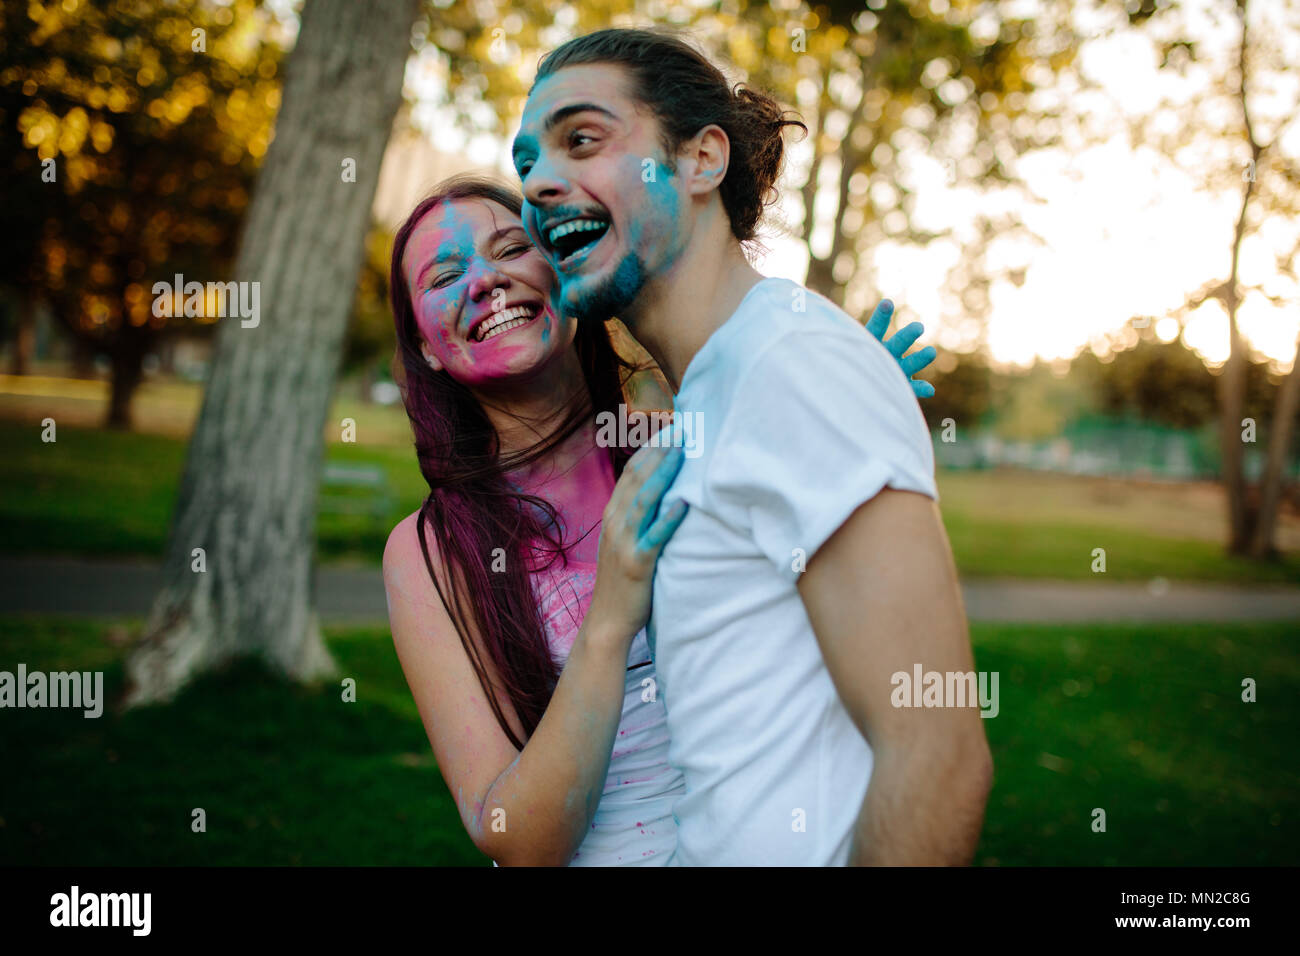 Smiling young couple with colored powder smeared on their faces. Cheerful man and woman enjoying festival of colors outdoors at park. - Stock Image